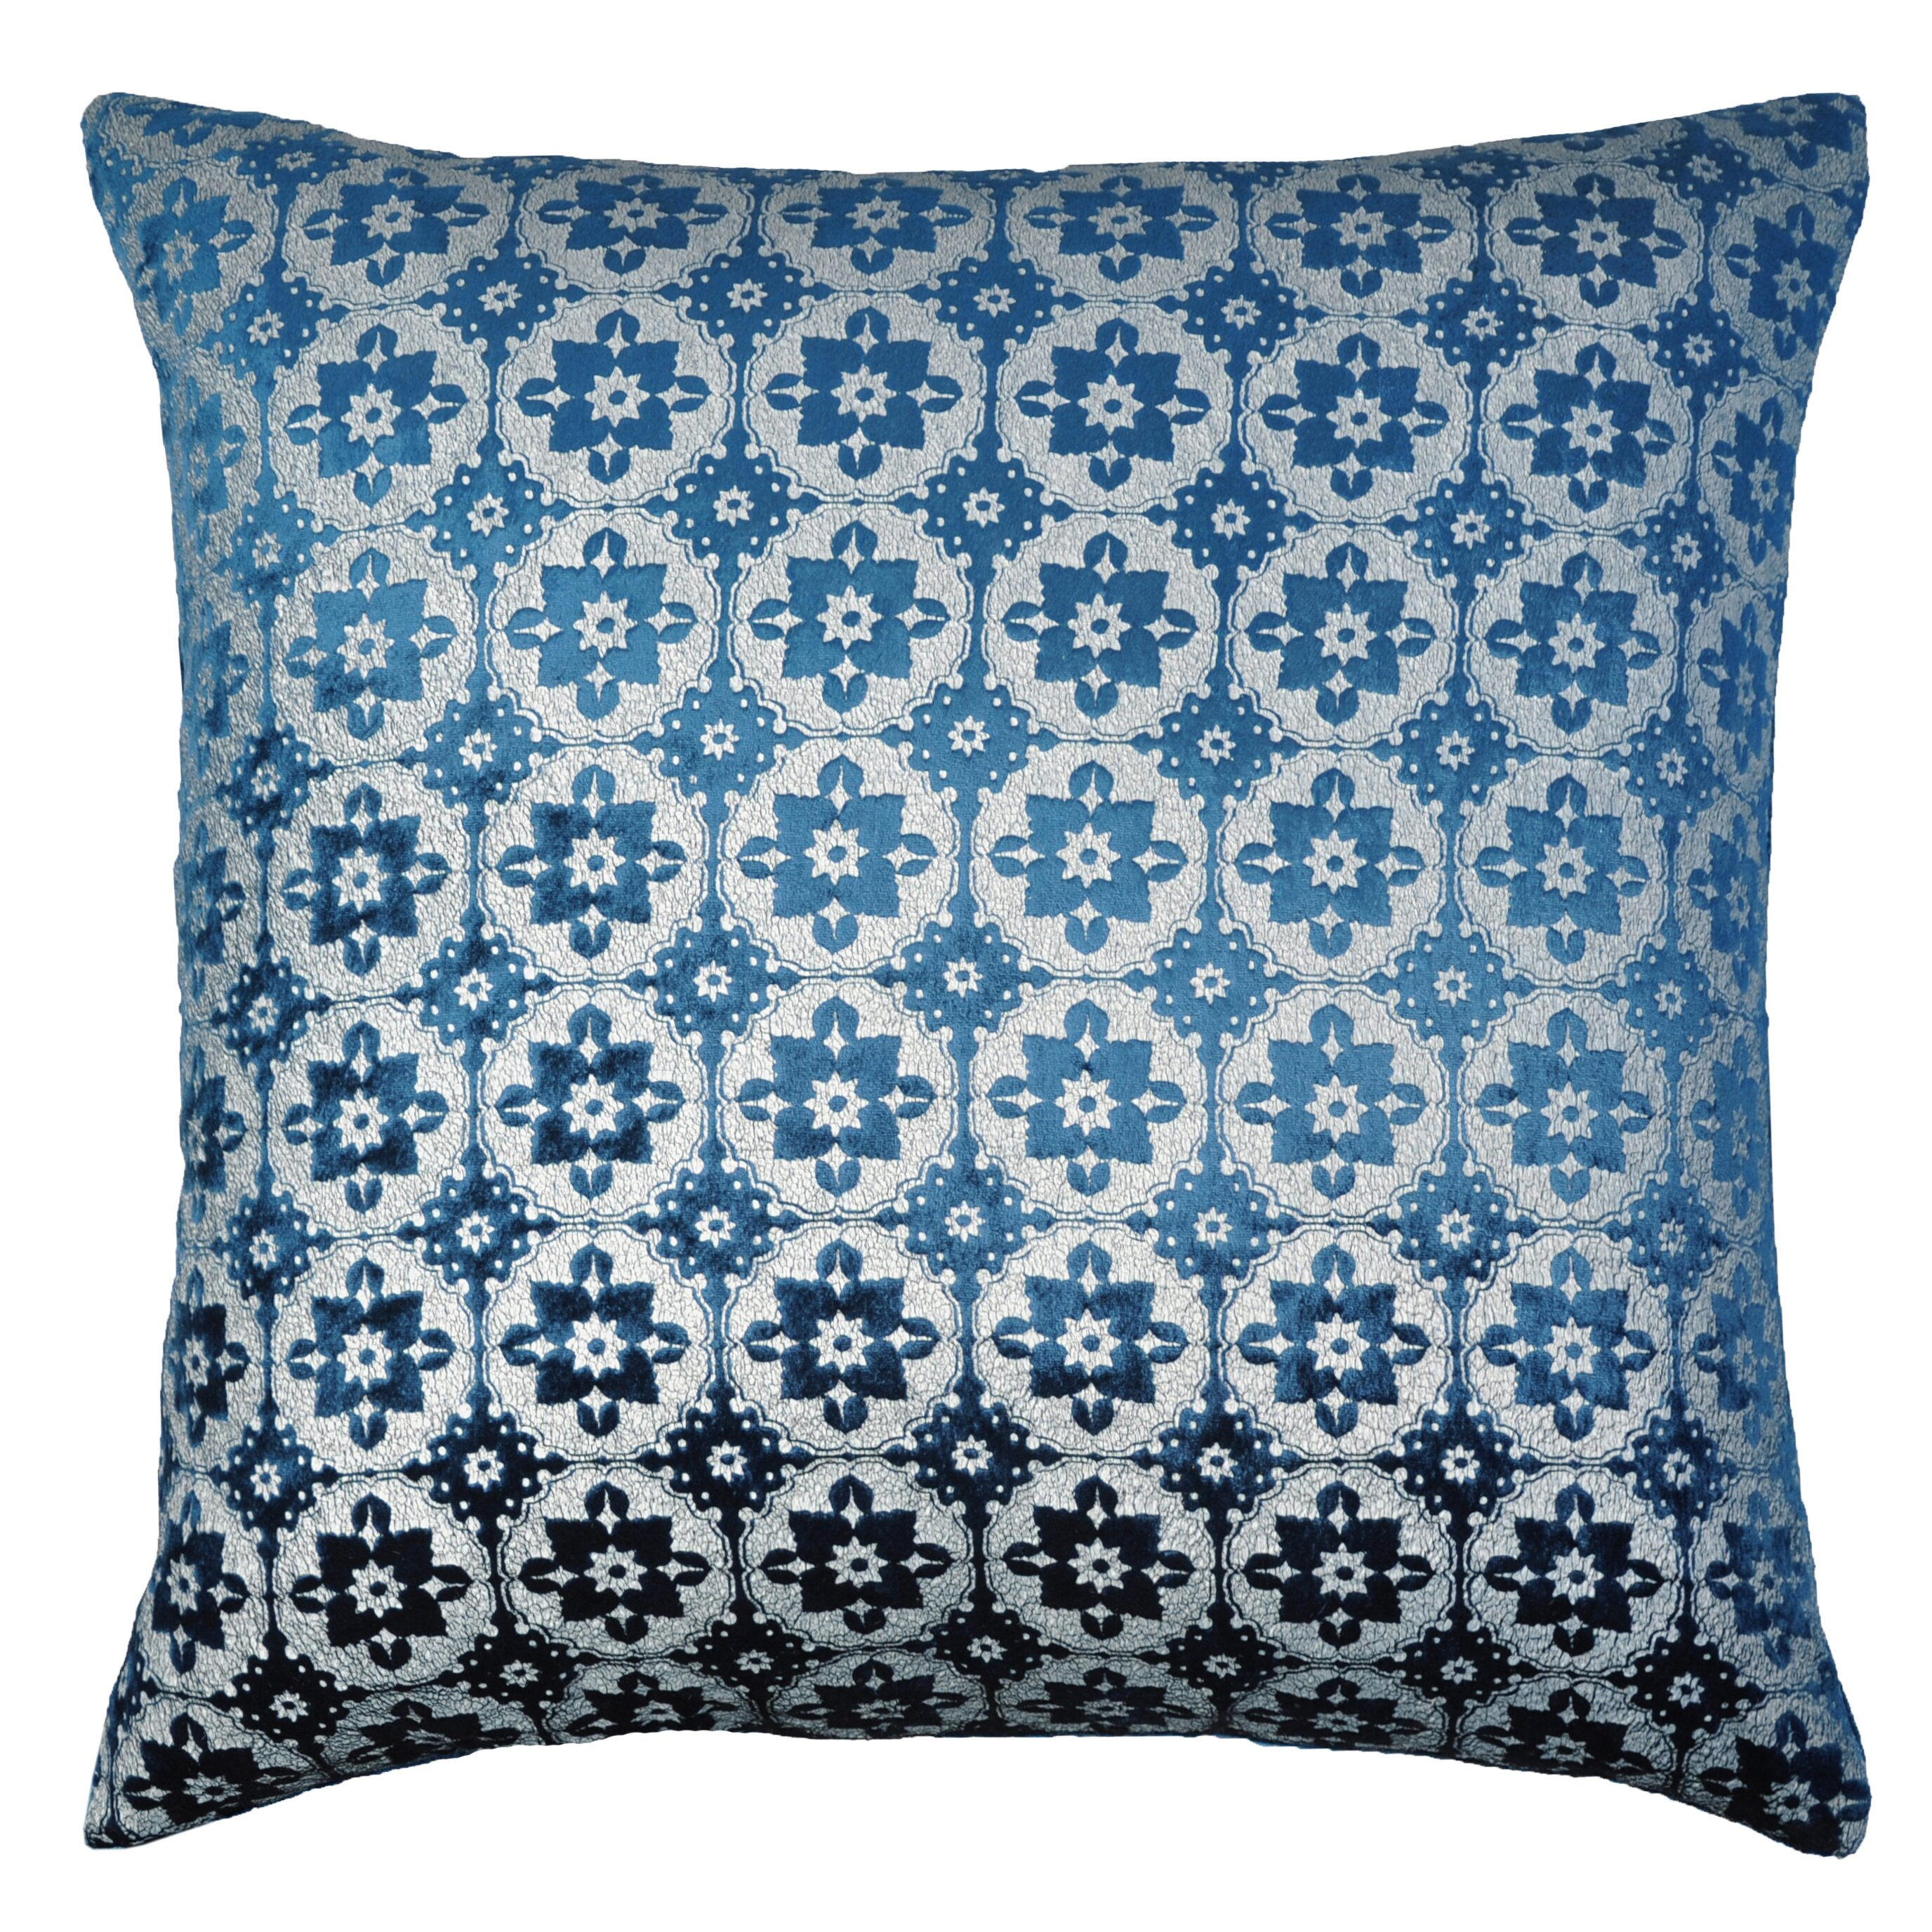 Throw Pillows Malum : Kevin O Brien Studio Moroccan Metallic Velvet Throw Pillow Wayfair